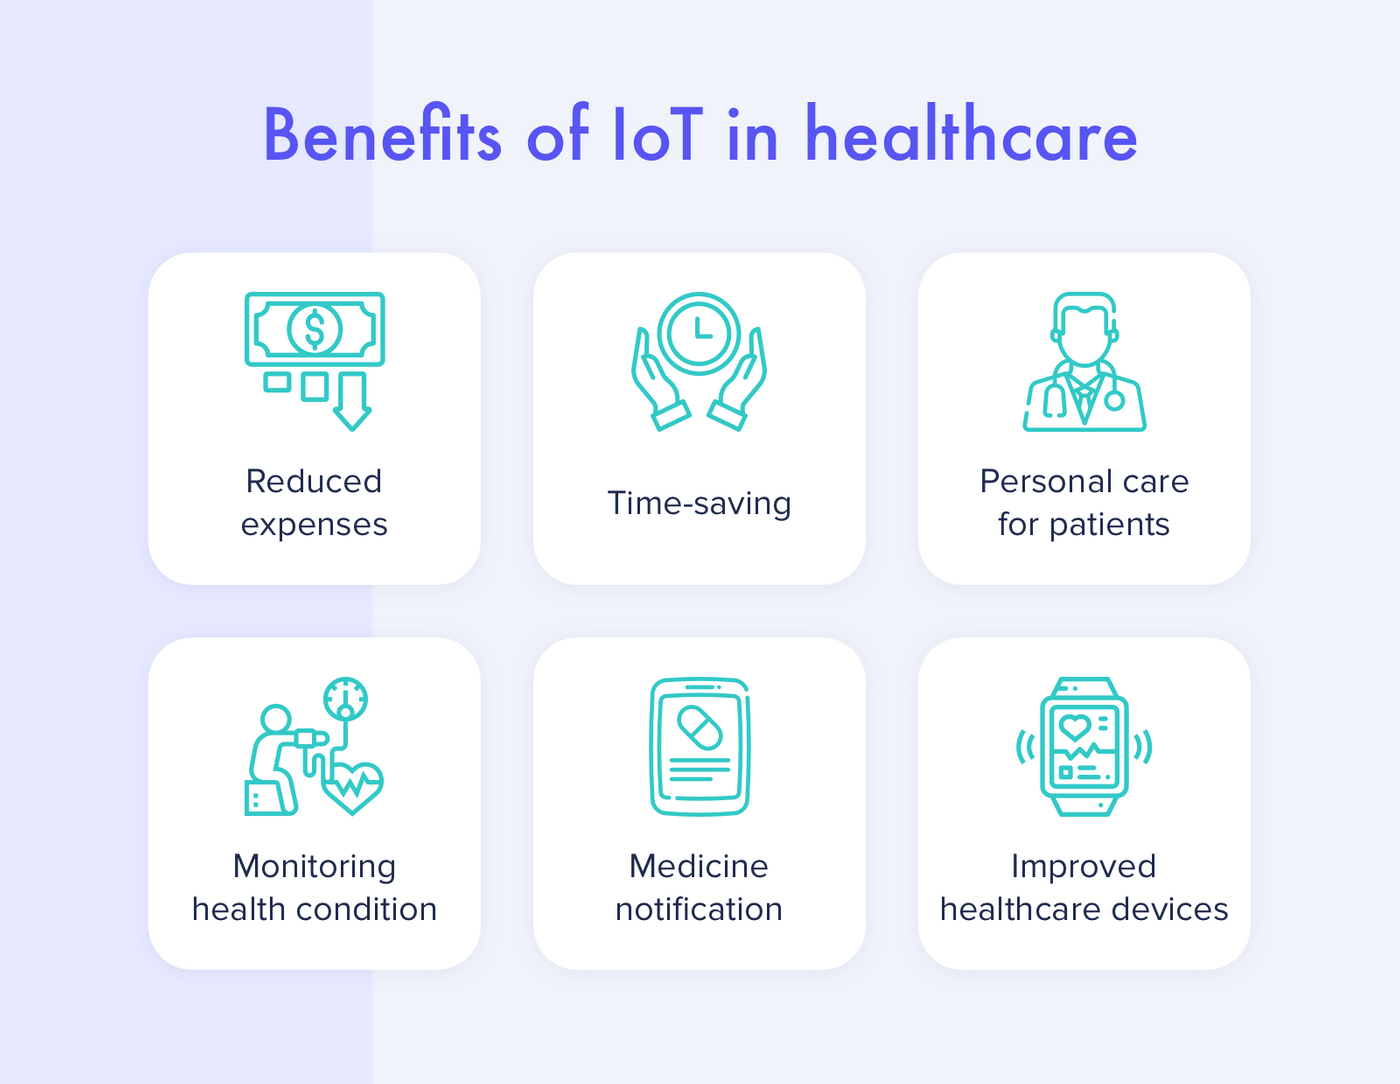 IoT opportunities for healthcare